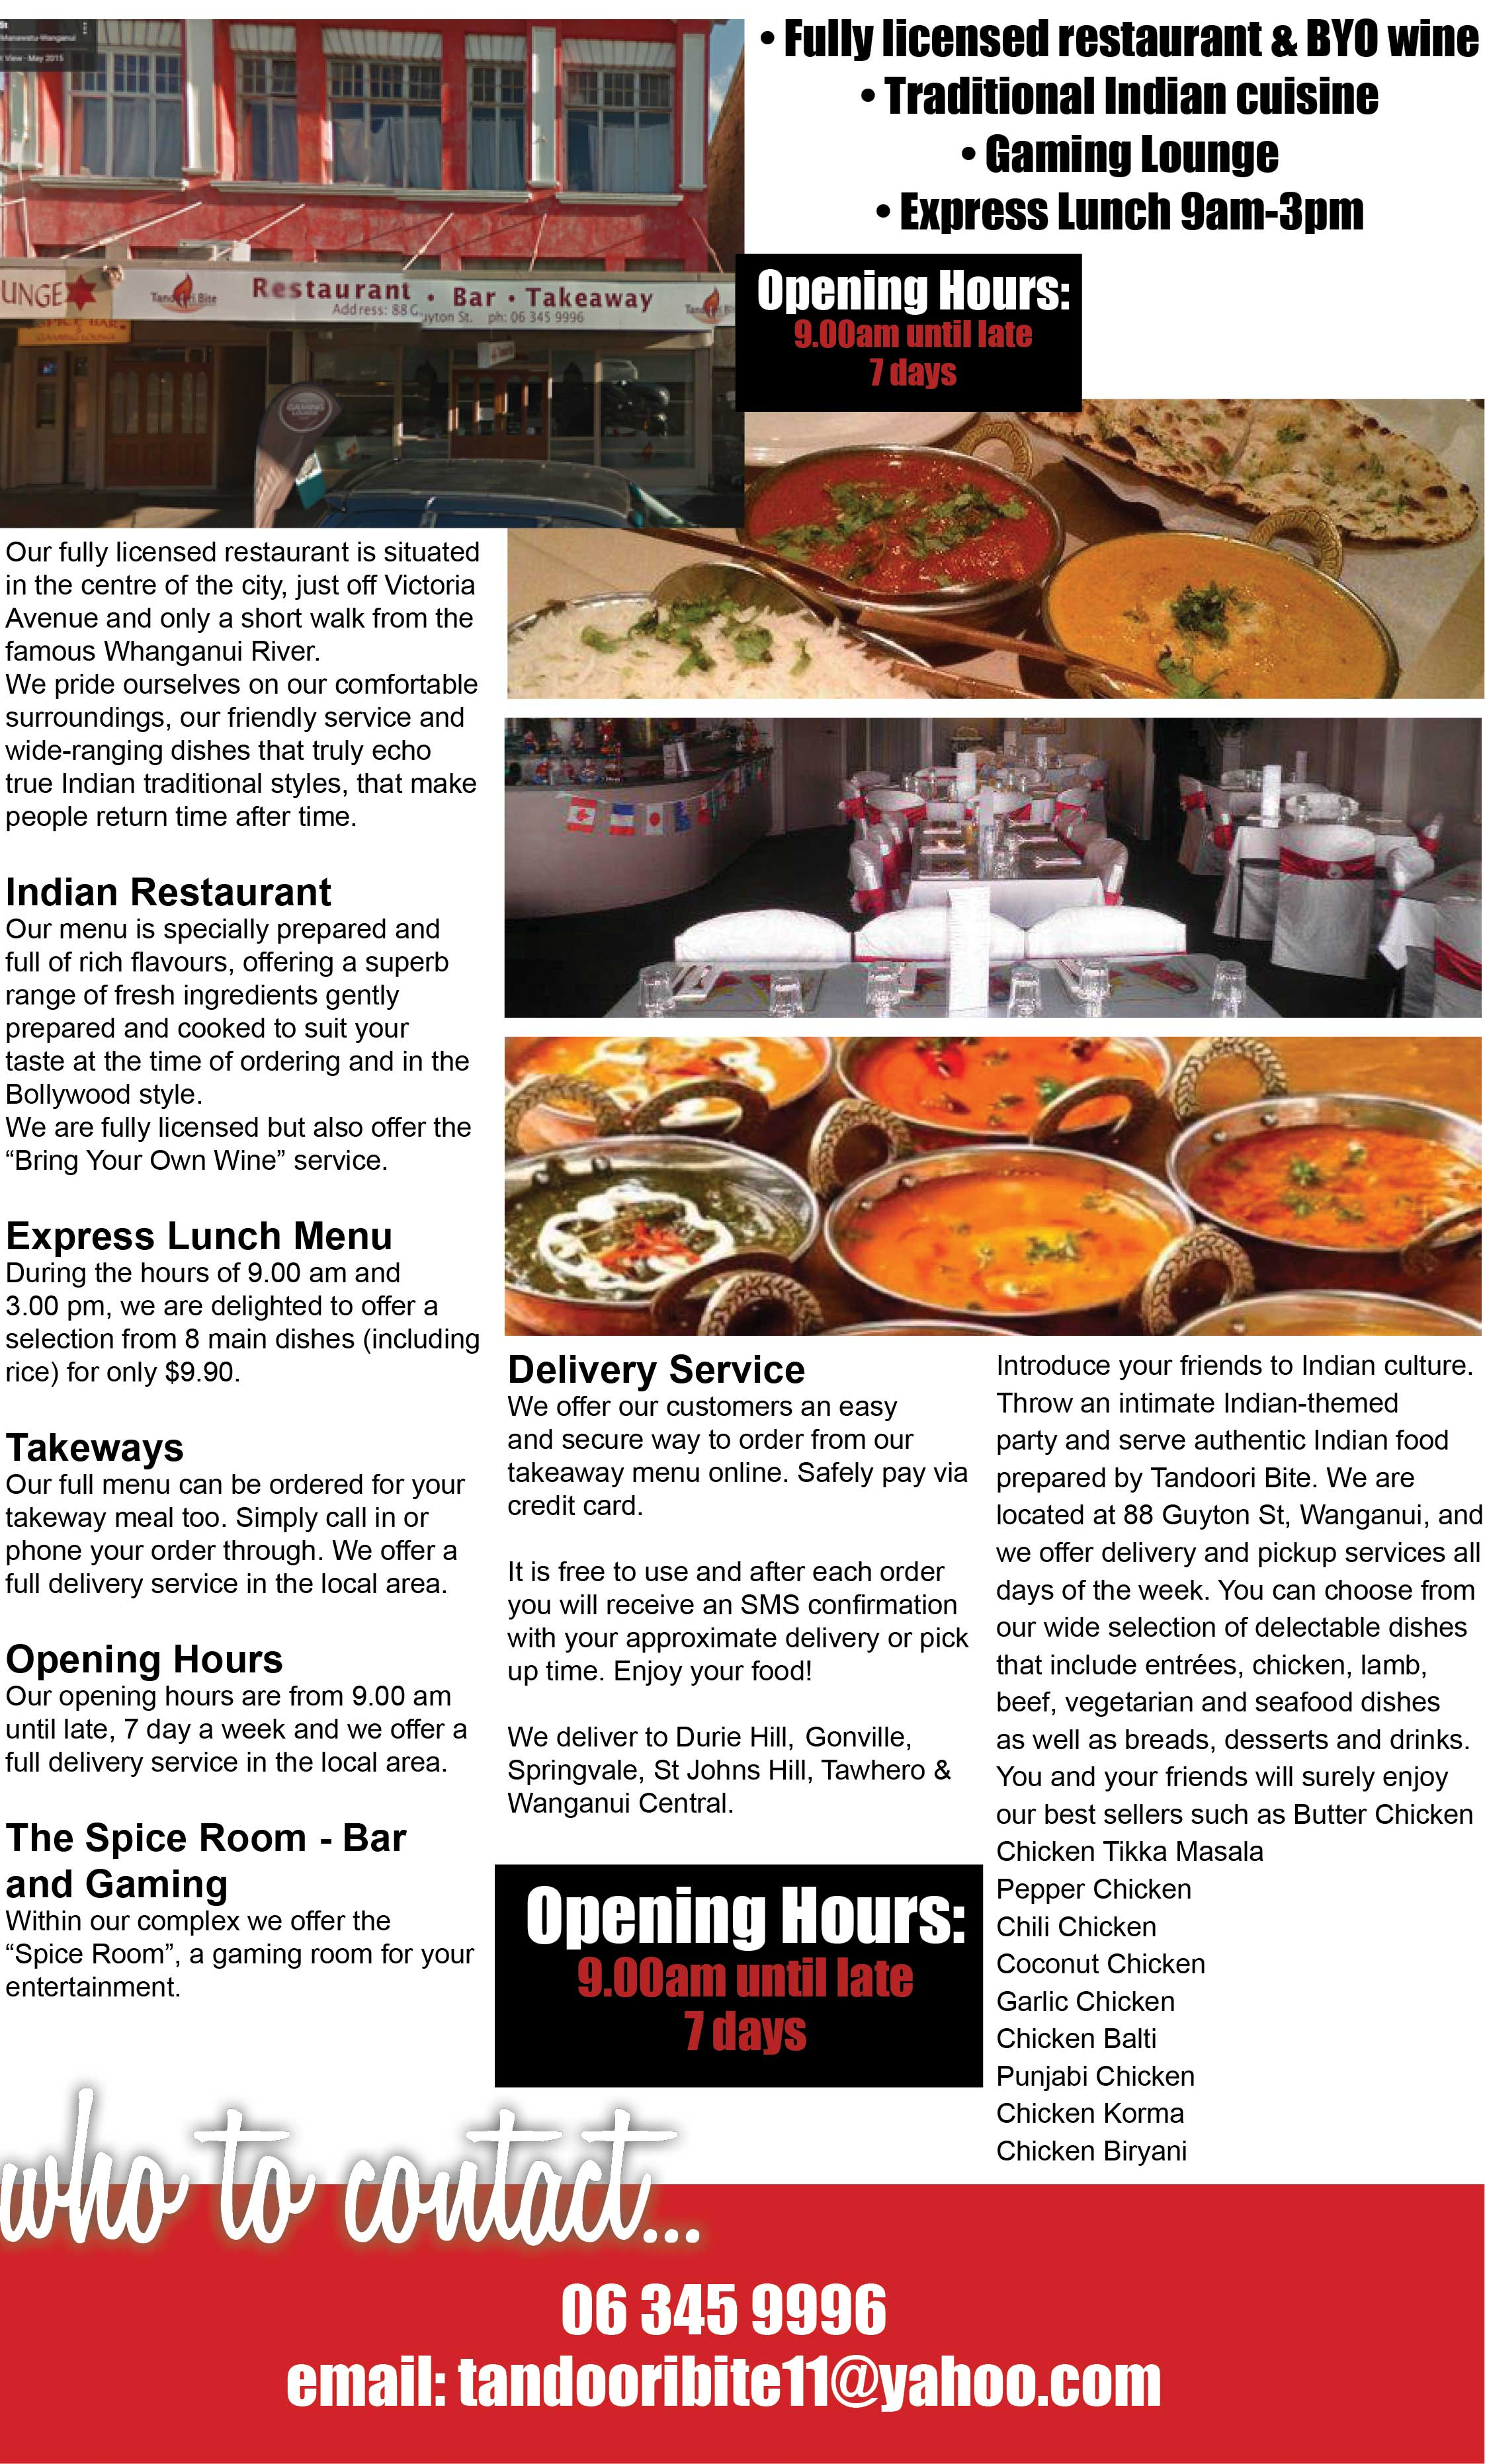 Our fully licensed restaurant is situated in the centre of the city, just off Victoria Avenue and only a short walk from the famous Whanganui River.  We pride ourselves on our comfortable surroundings, our friendly service and wide-ranging dishes that truly echo true Indian traditional styles, that make people return time after time.  Indian Restaurant  Our menu is specially prepared and full of rich flavours, offering a superb range of fresh ingredients gently prepared and cooked to suit your taste at the time of ordering and in the Bollywood style.  We are fully licensed but also offer the